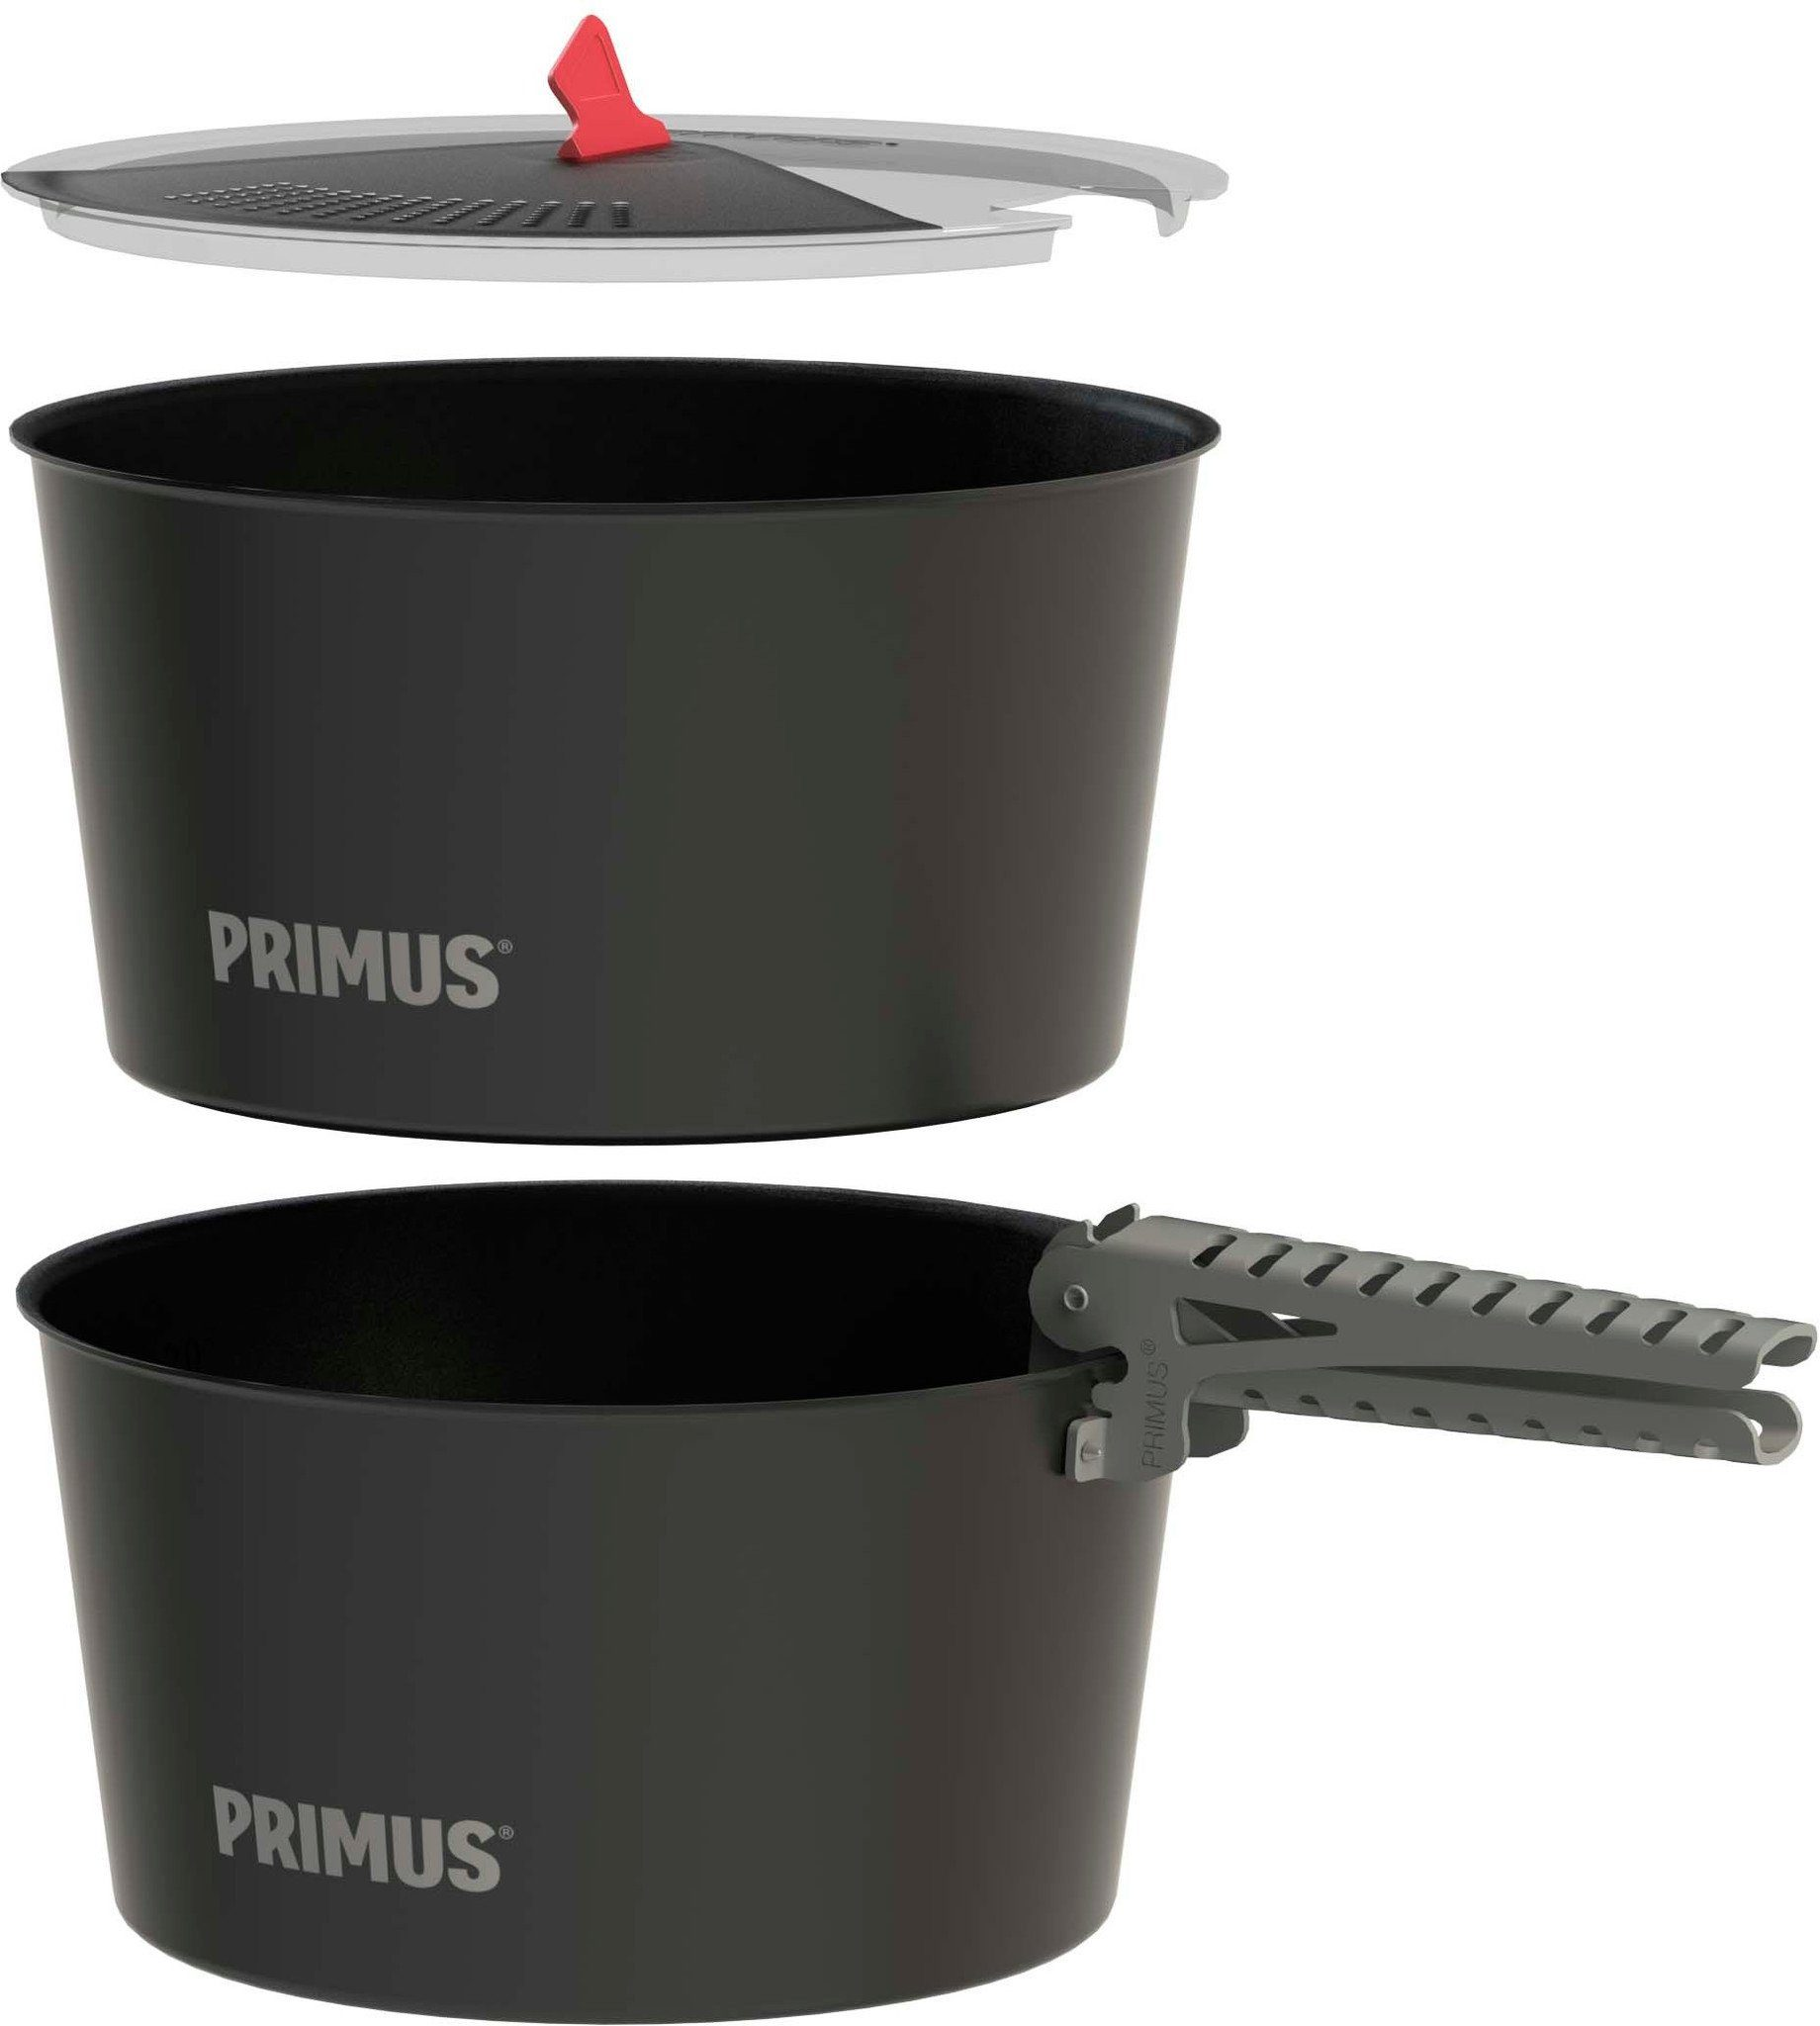 Primus Camping-Geschirr »LITech Pot Set 2300ml«